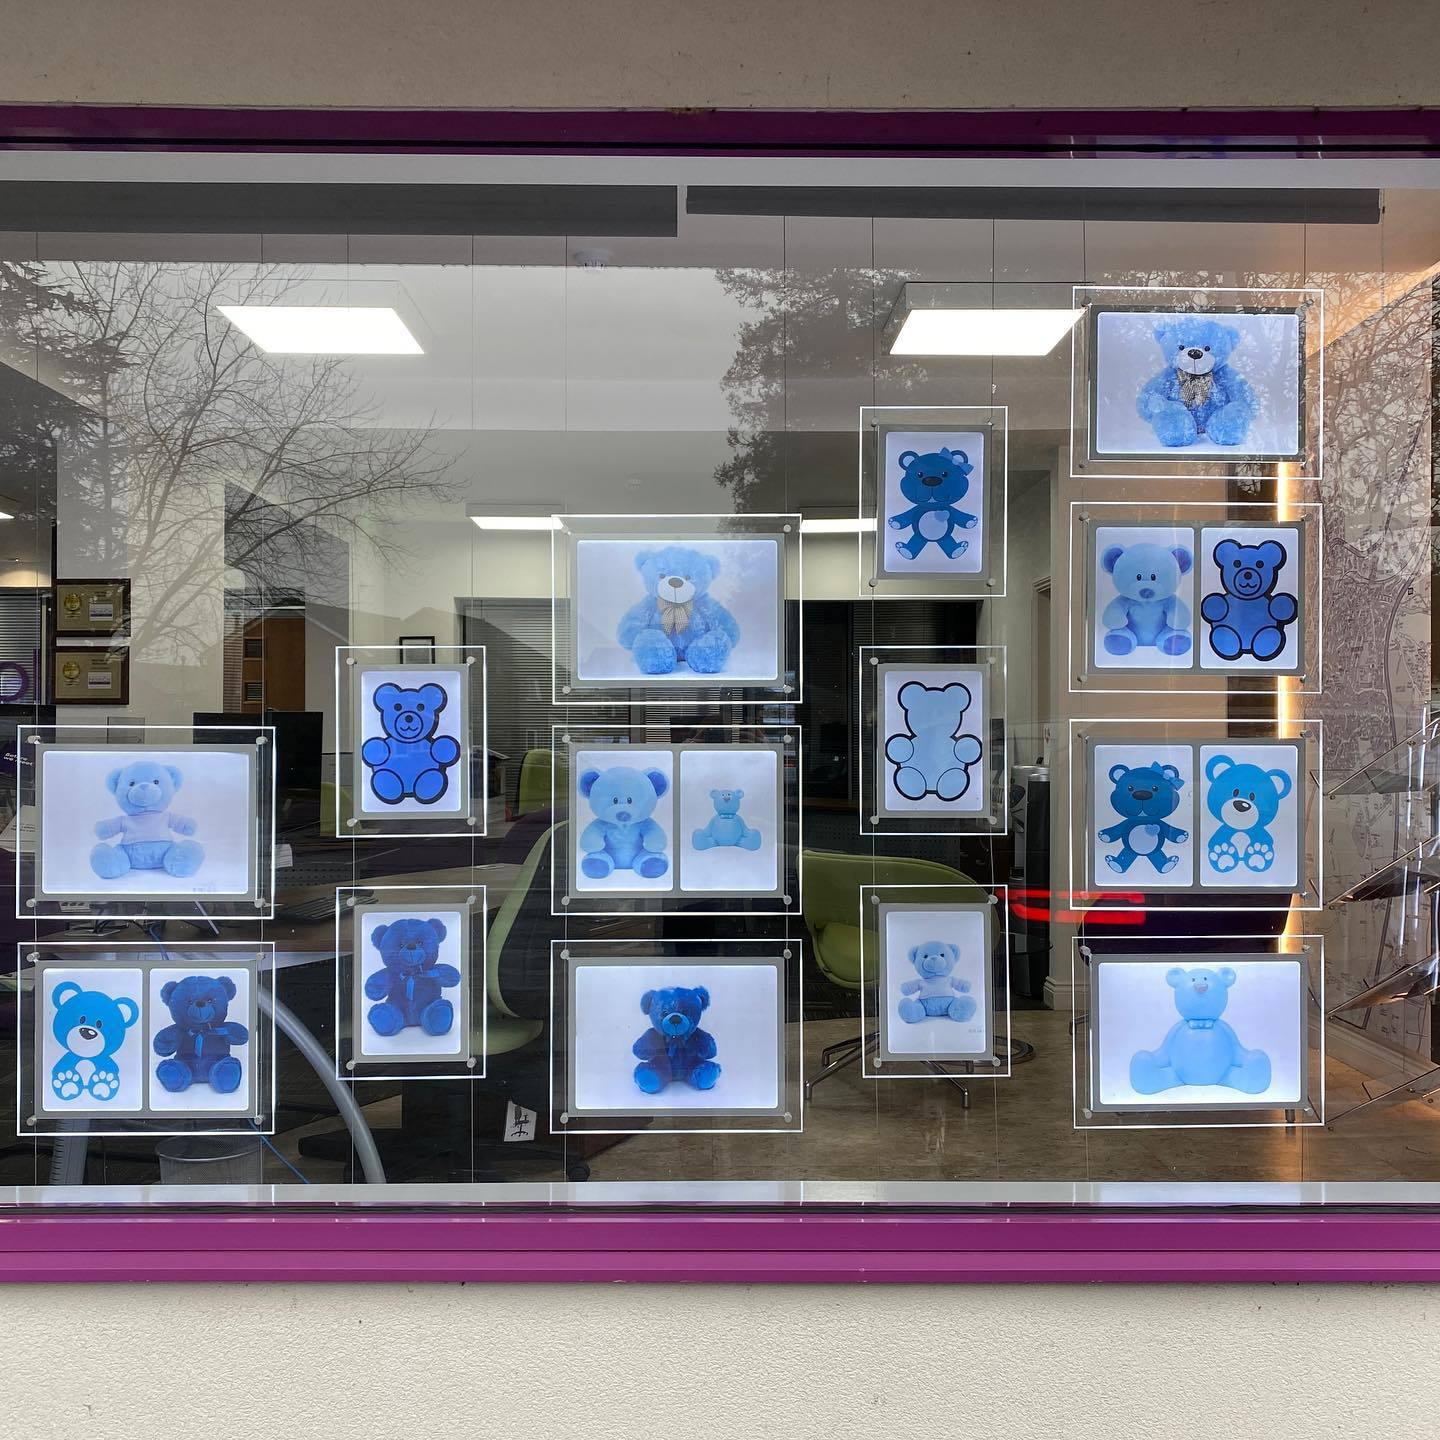 UNITED: Nicol & Co have made powerful use of their display windows in Droitwich, Worcester and Malvern